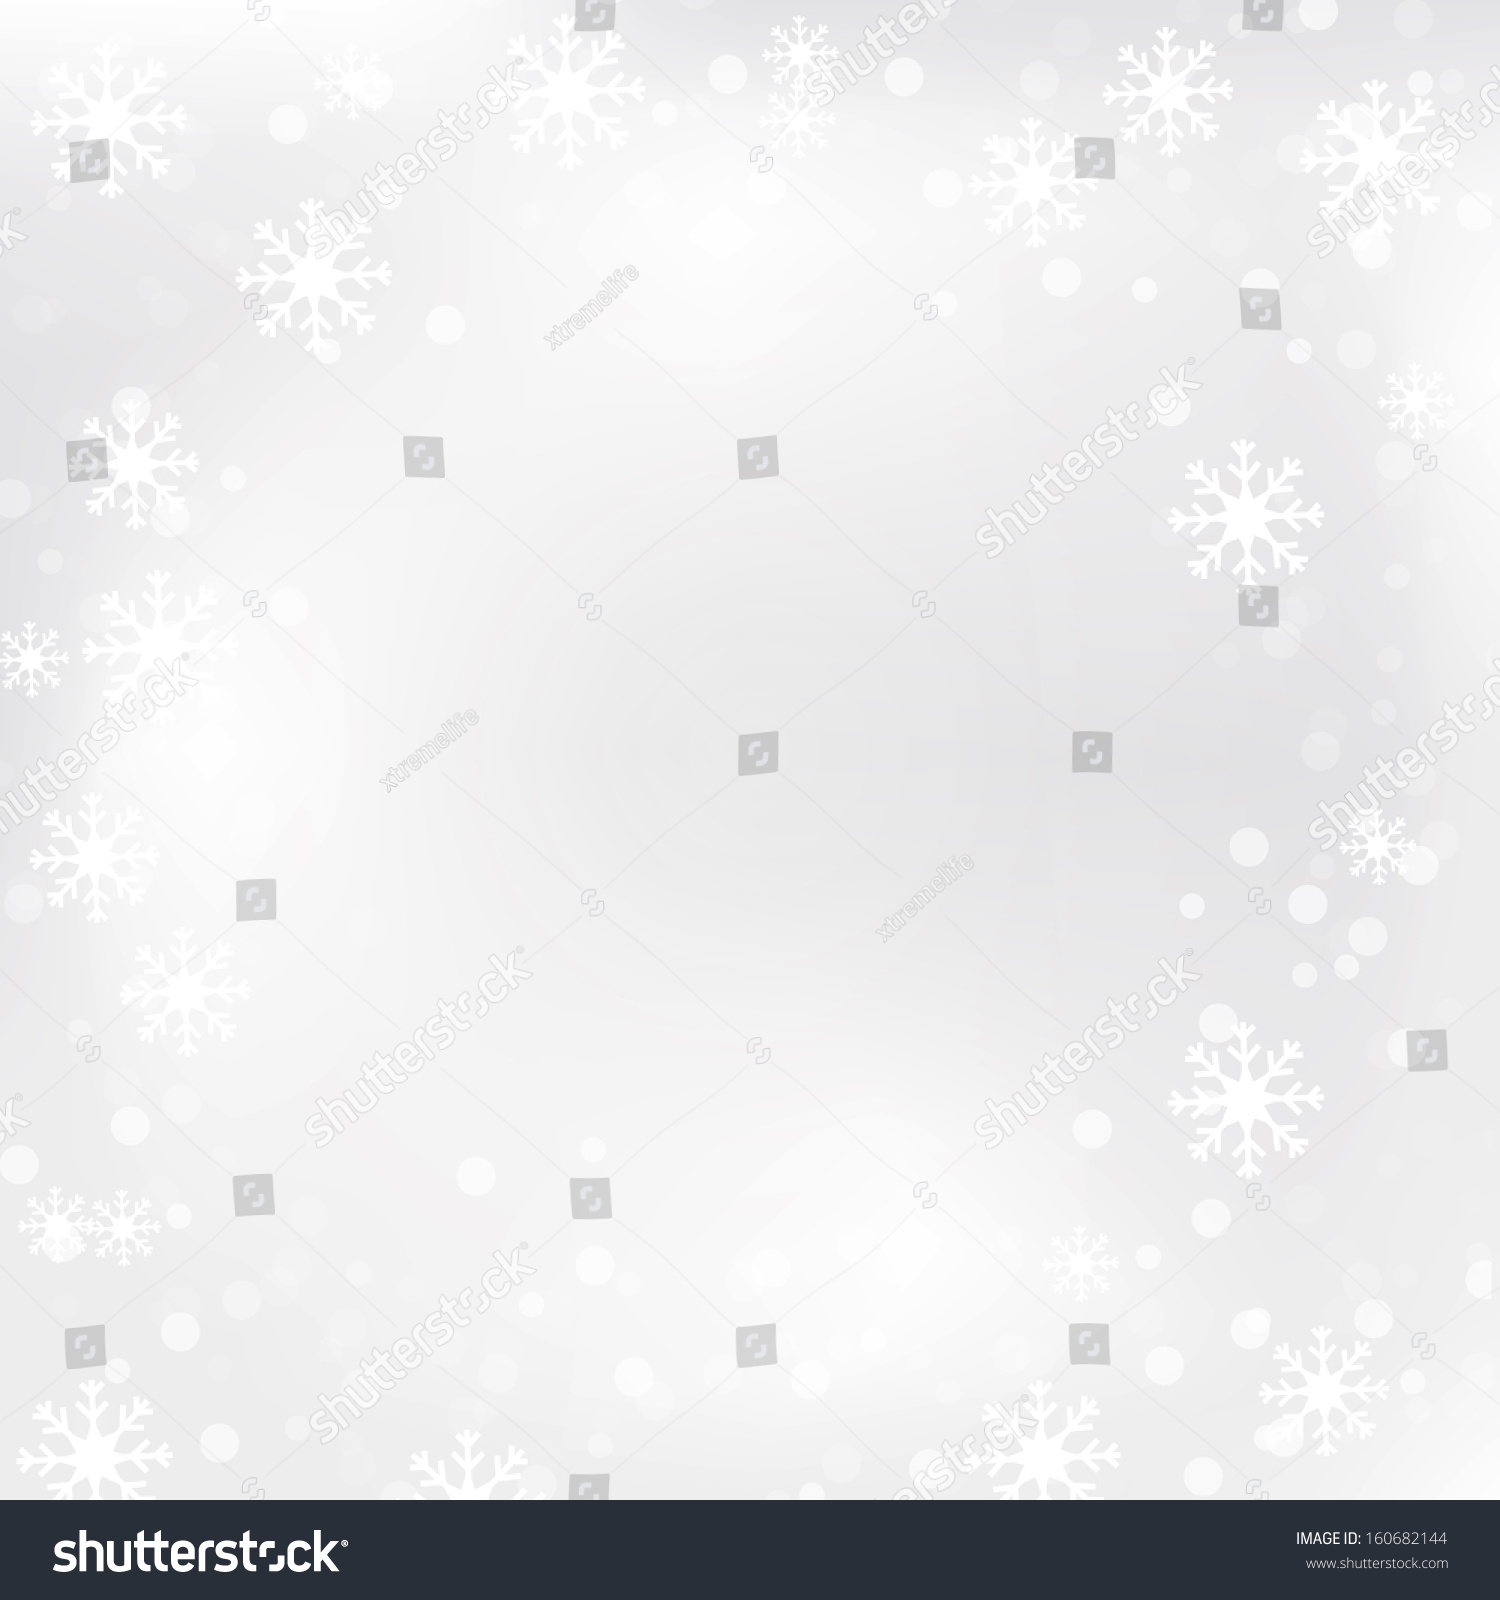 Printable Snowflakes Stock Vector Royalty Free 160682144